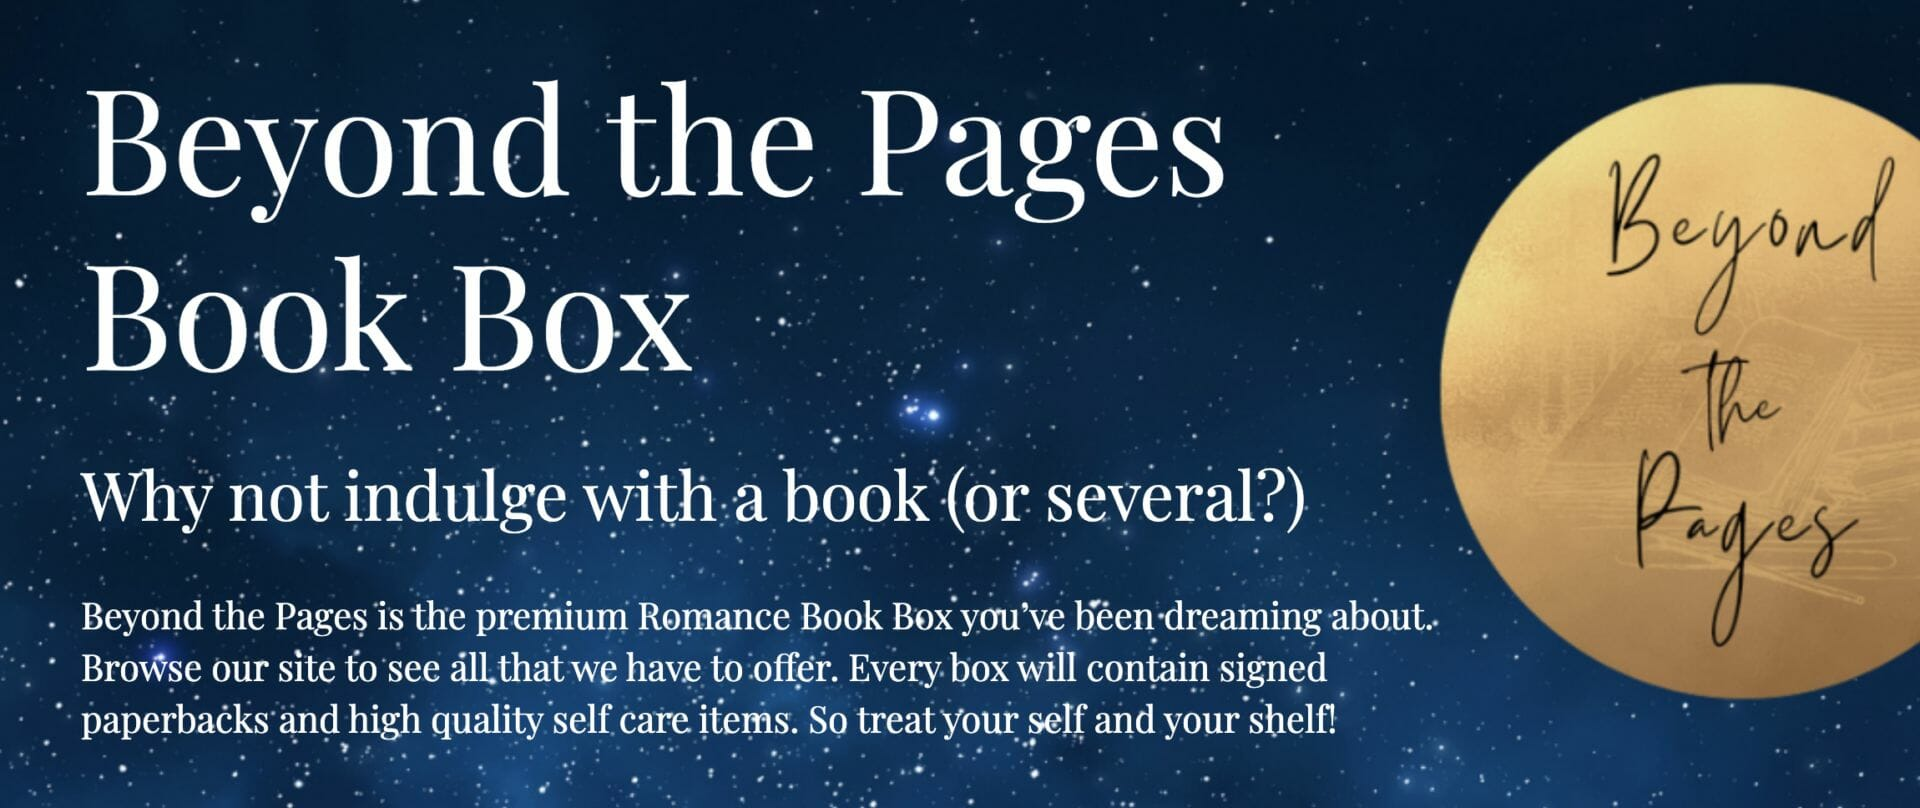 Beyond The Pages Book Box